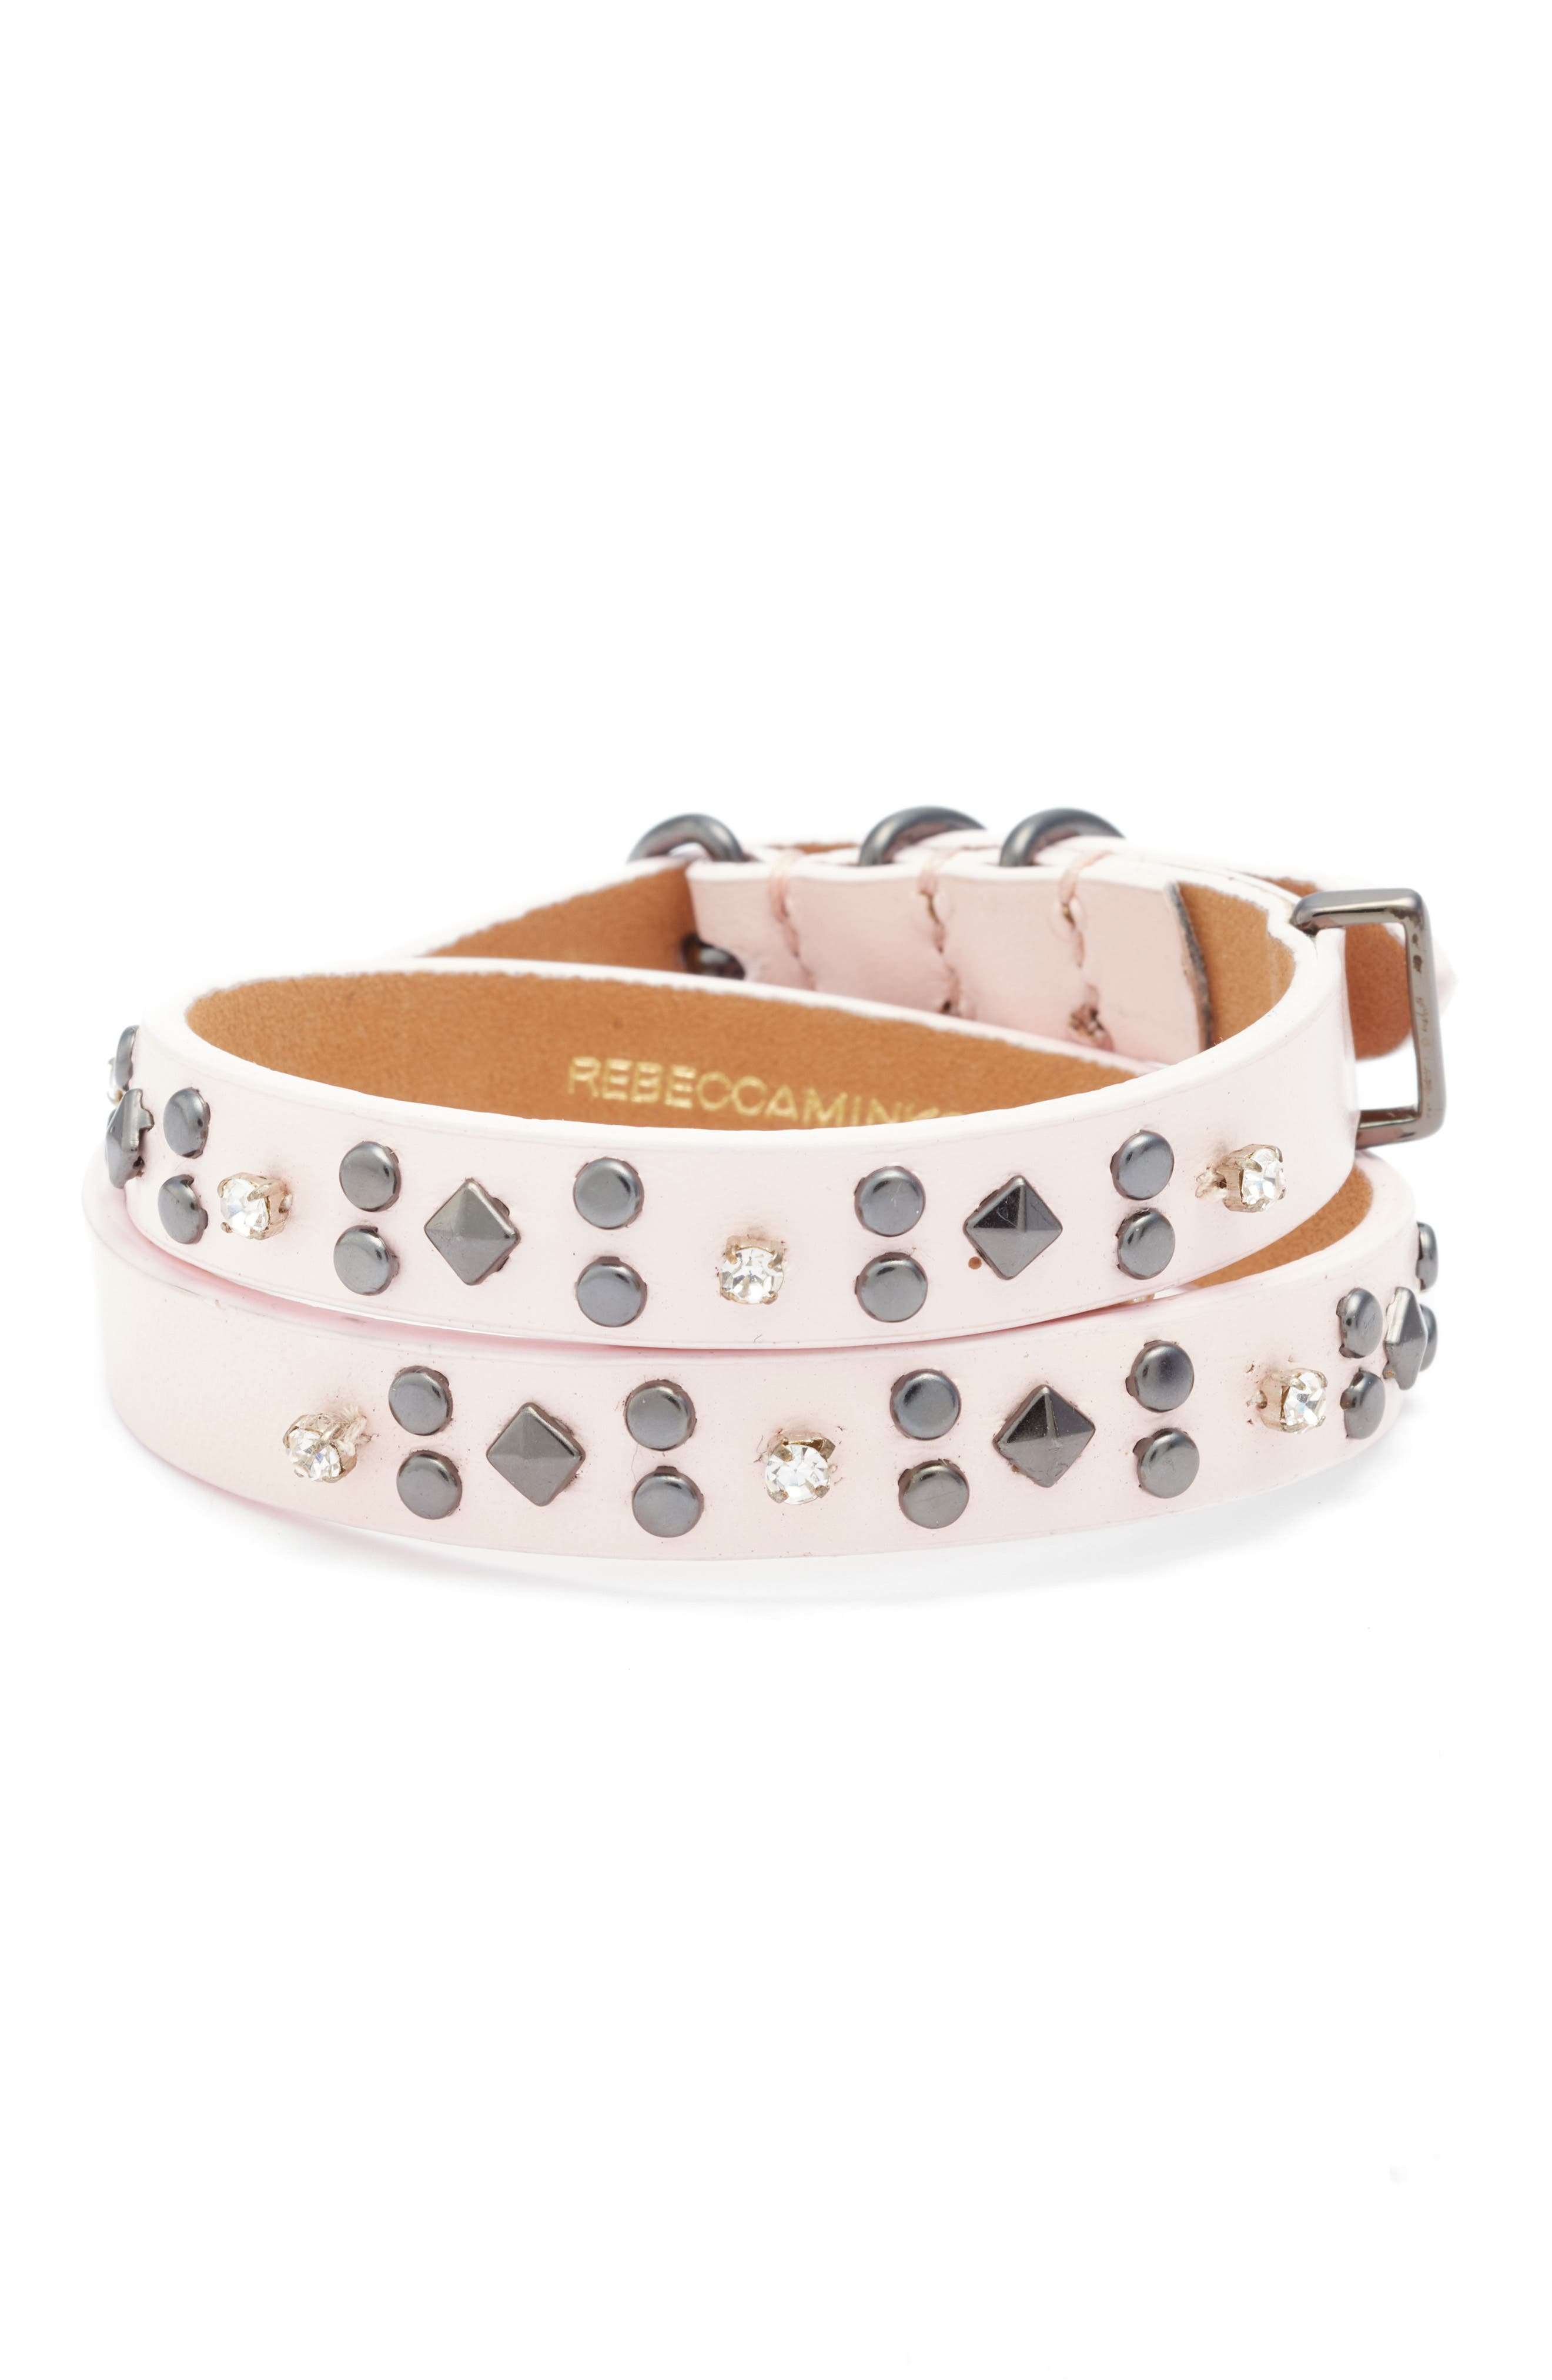 Rebecca Minkoff Wrap Leather Bracelet